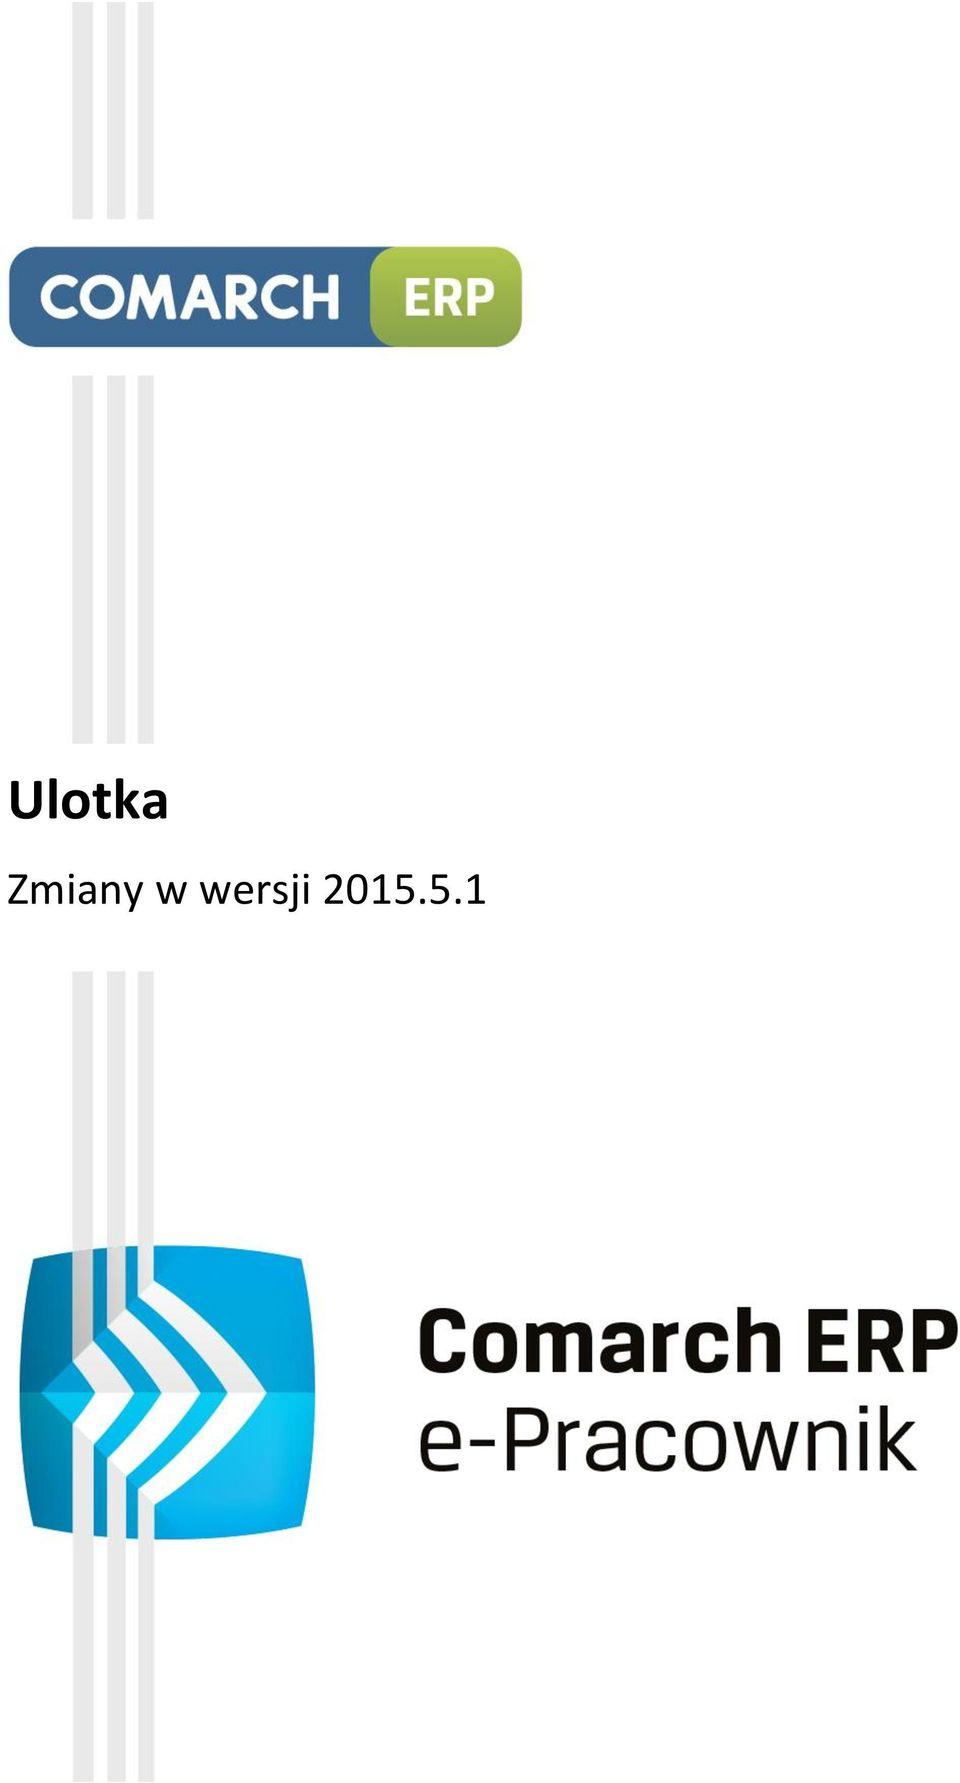 5.1 Comarch ERP